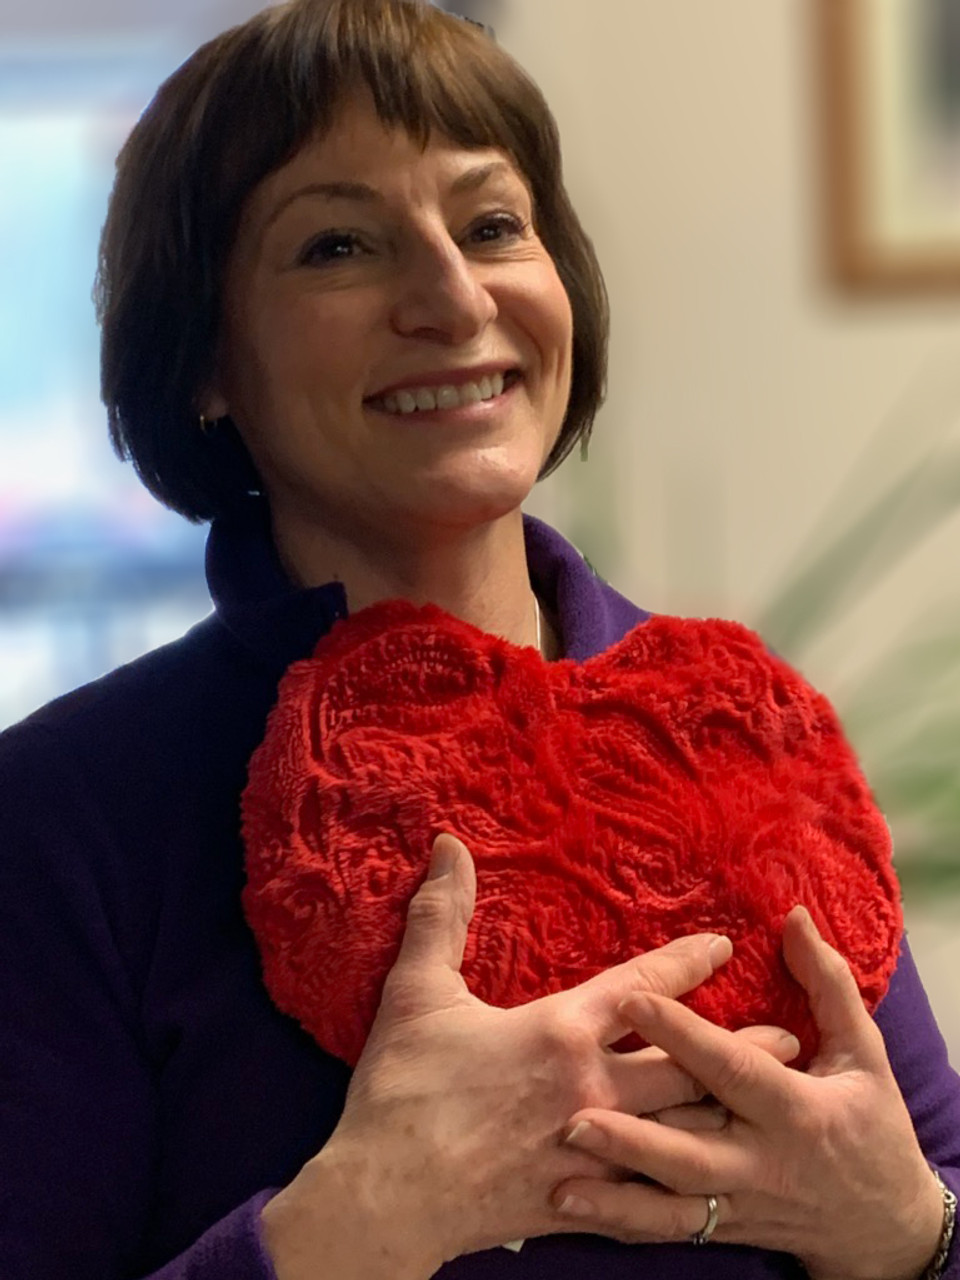 """Healing Heart Pac (11"""") Pink Available for Anyone Who Needs a Little Extra Warmth and Comfort by Grampa's Garden"""